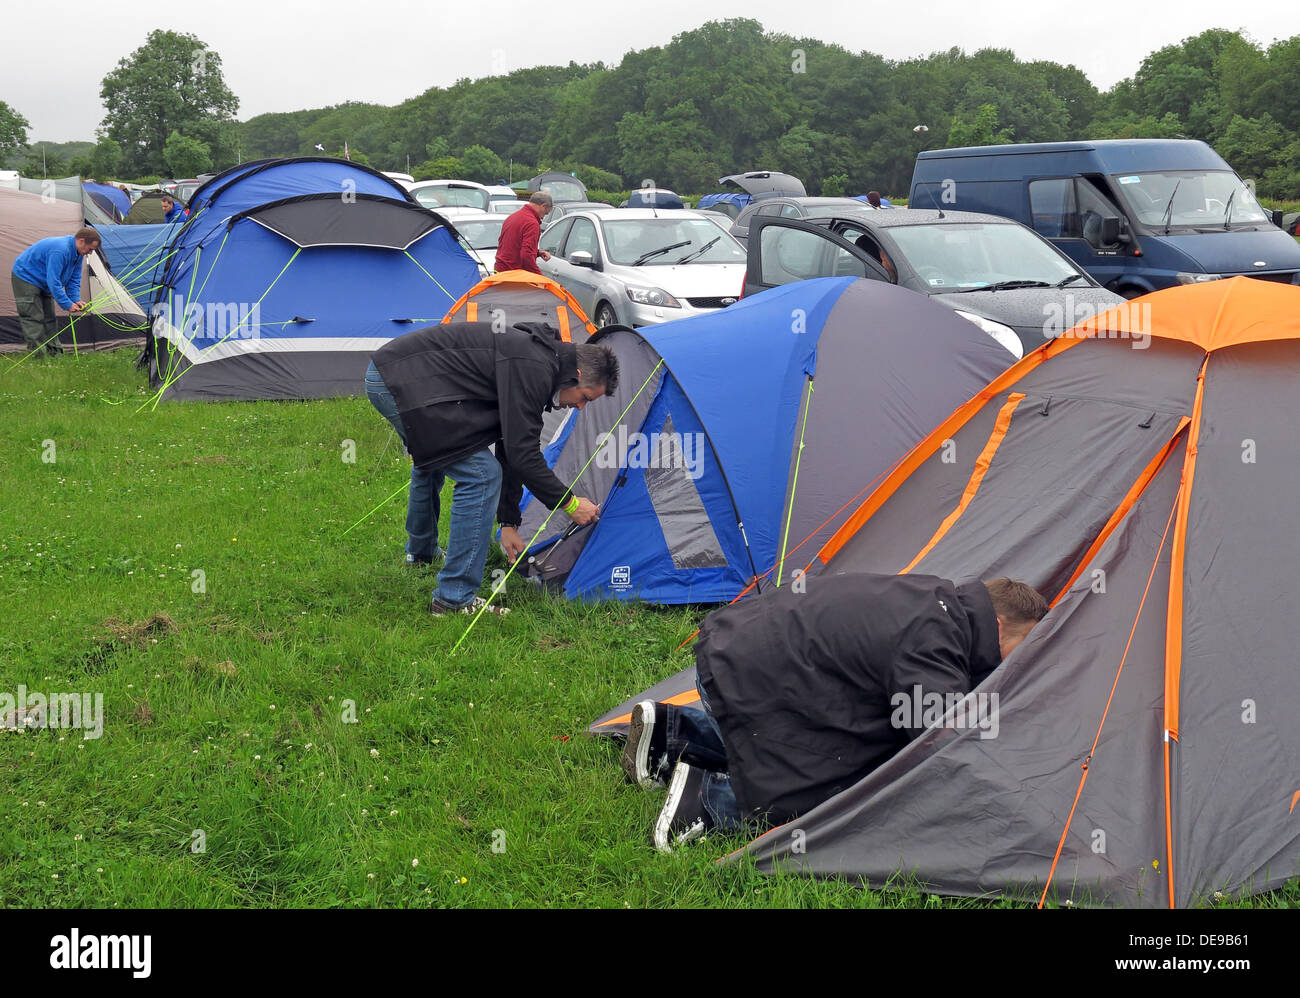 or,sporting,event,F1,Grand,Prix,British,great,Britain,glasto,silverstone,woods,wood,woodlands,field,in,a,putting,up,a,shelter,camp,sheets,of,fabric,frame,tentframe,blacks,cheap,solution,lightweight,hiking,cotton,canvas,nylon,felt and polyester campsite glamping not glamorous camping wet weather,gotonysmith inclement Silverstone Woodlands,Towcester,Northamptonshire,England,UK NN12 8TN NN128TN,Buy Pictures of,Buy Images Of